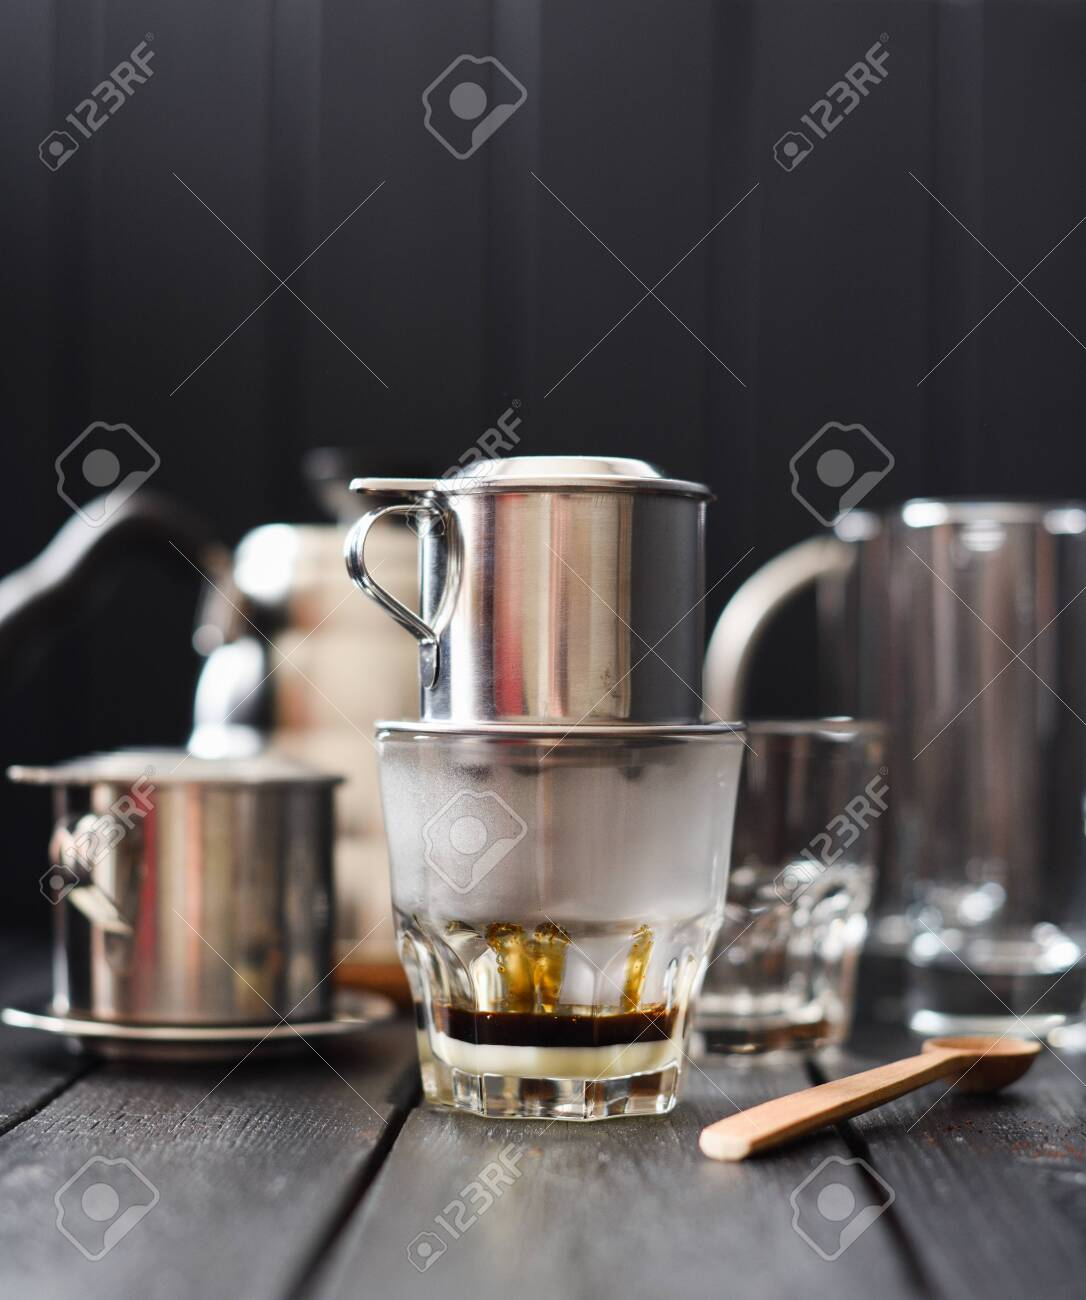 Preraring Drip Coffee Vietnamese Style Hot Black Coffee Dripping Stock Photo Picture And Royalty Free Image Image 127748434